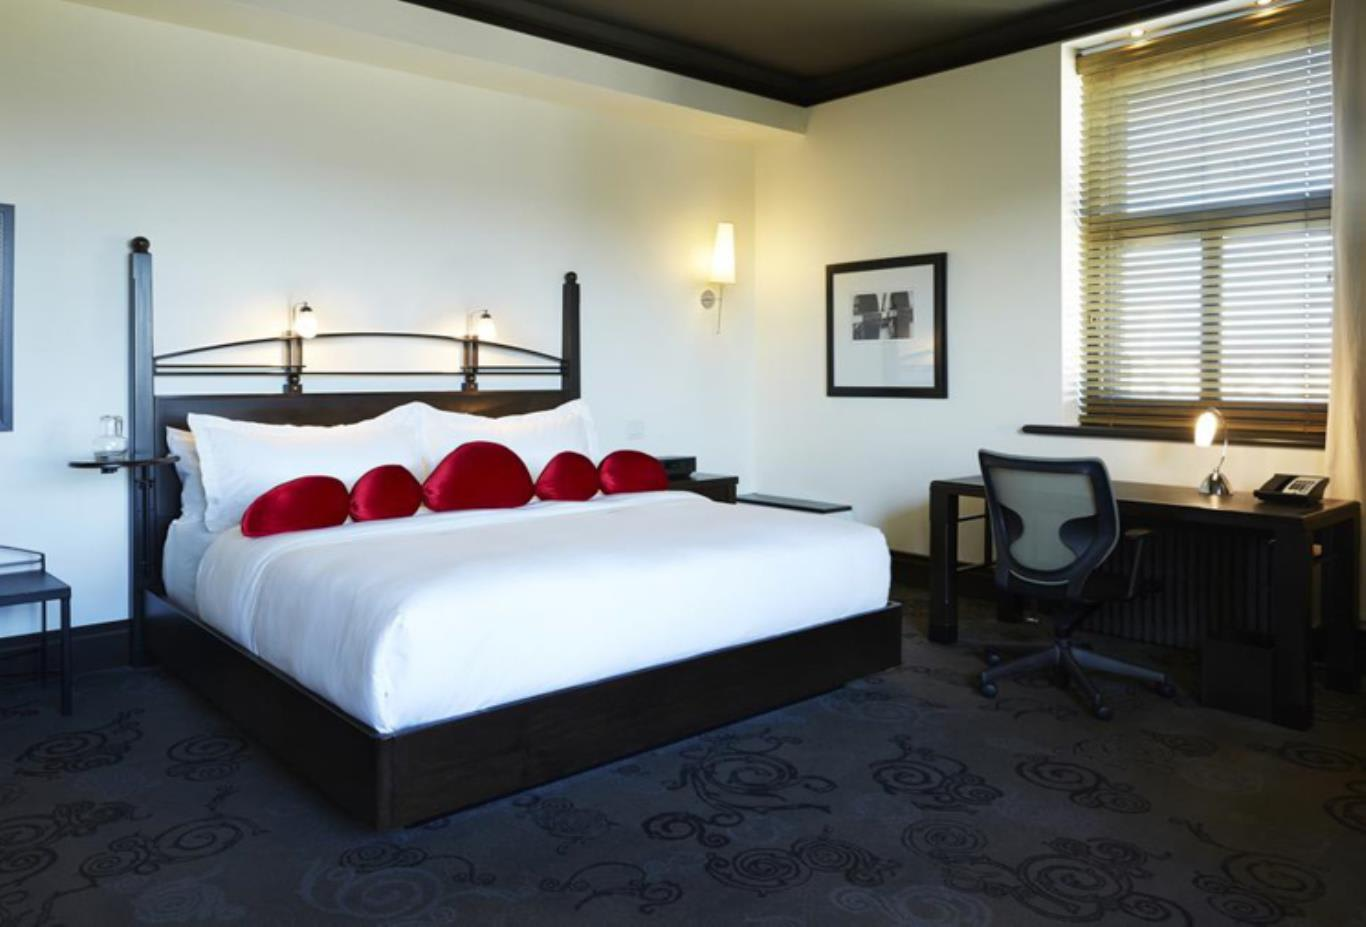 The Signature Room bed